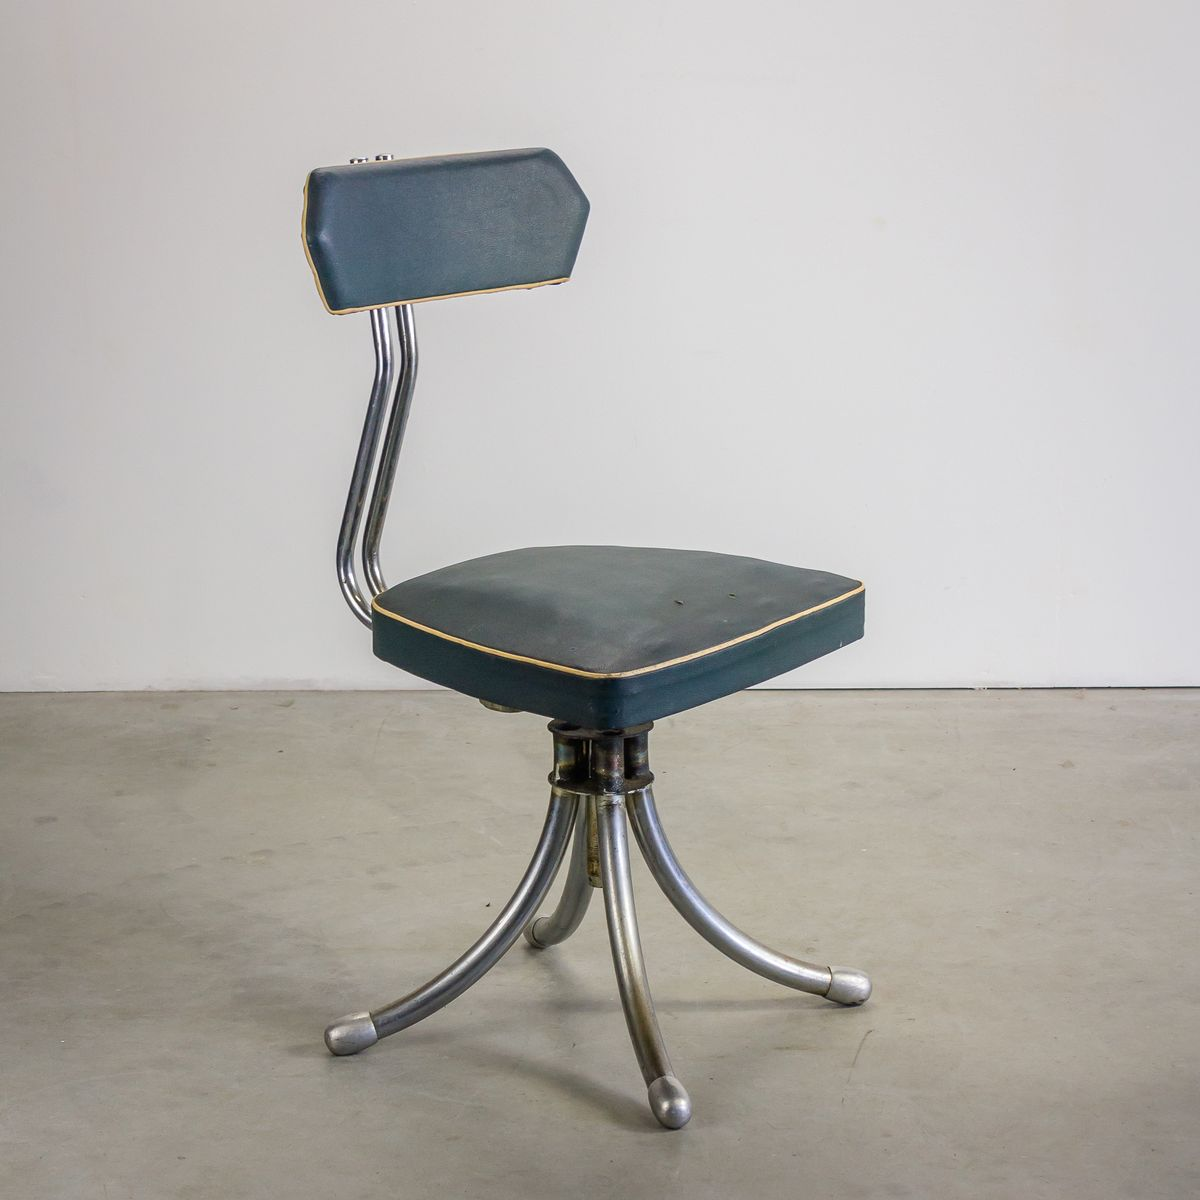 French Industrial Design Desk Chair 1950s for sale at Pamono